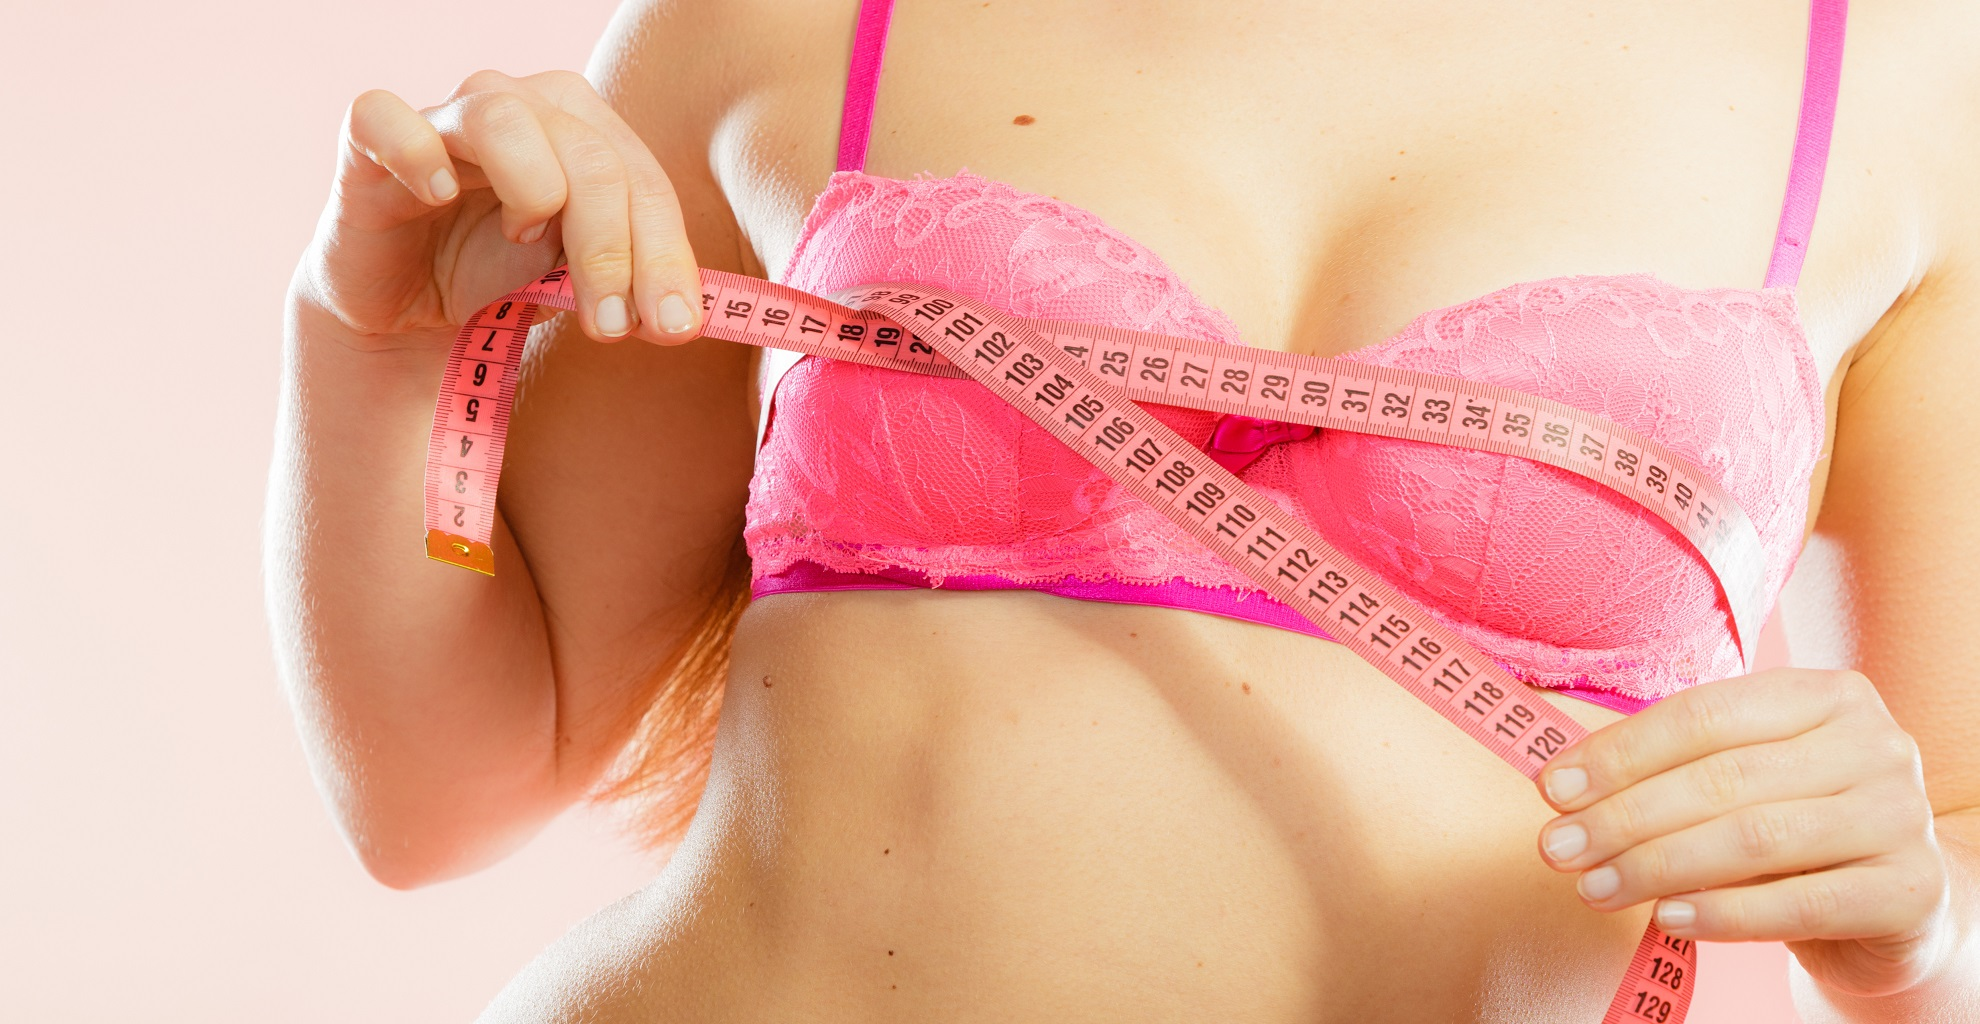 Closeup of female body. Fitness woman fit girl in pink lingerie with measure tape measuring her chest breasts